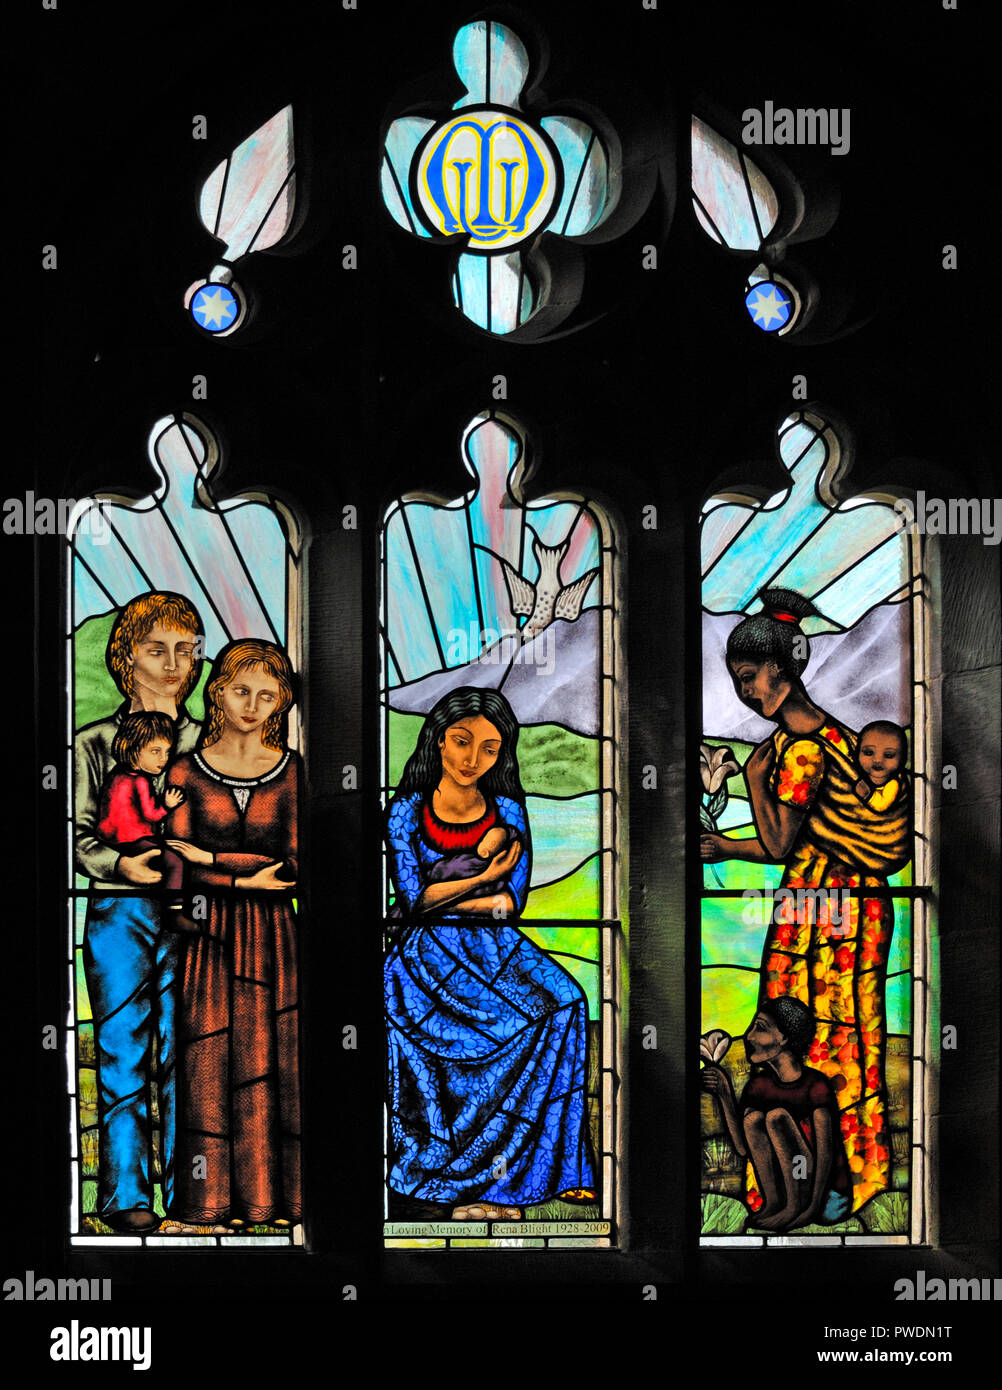 'Motherhood' window by Sarah Sutton, 2009. Church of Saint Mark. Natland, Cumbria, England, United Kingdom, Europe. - Stock Image